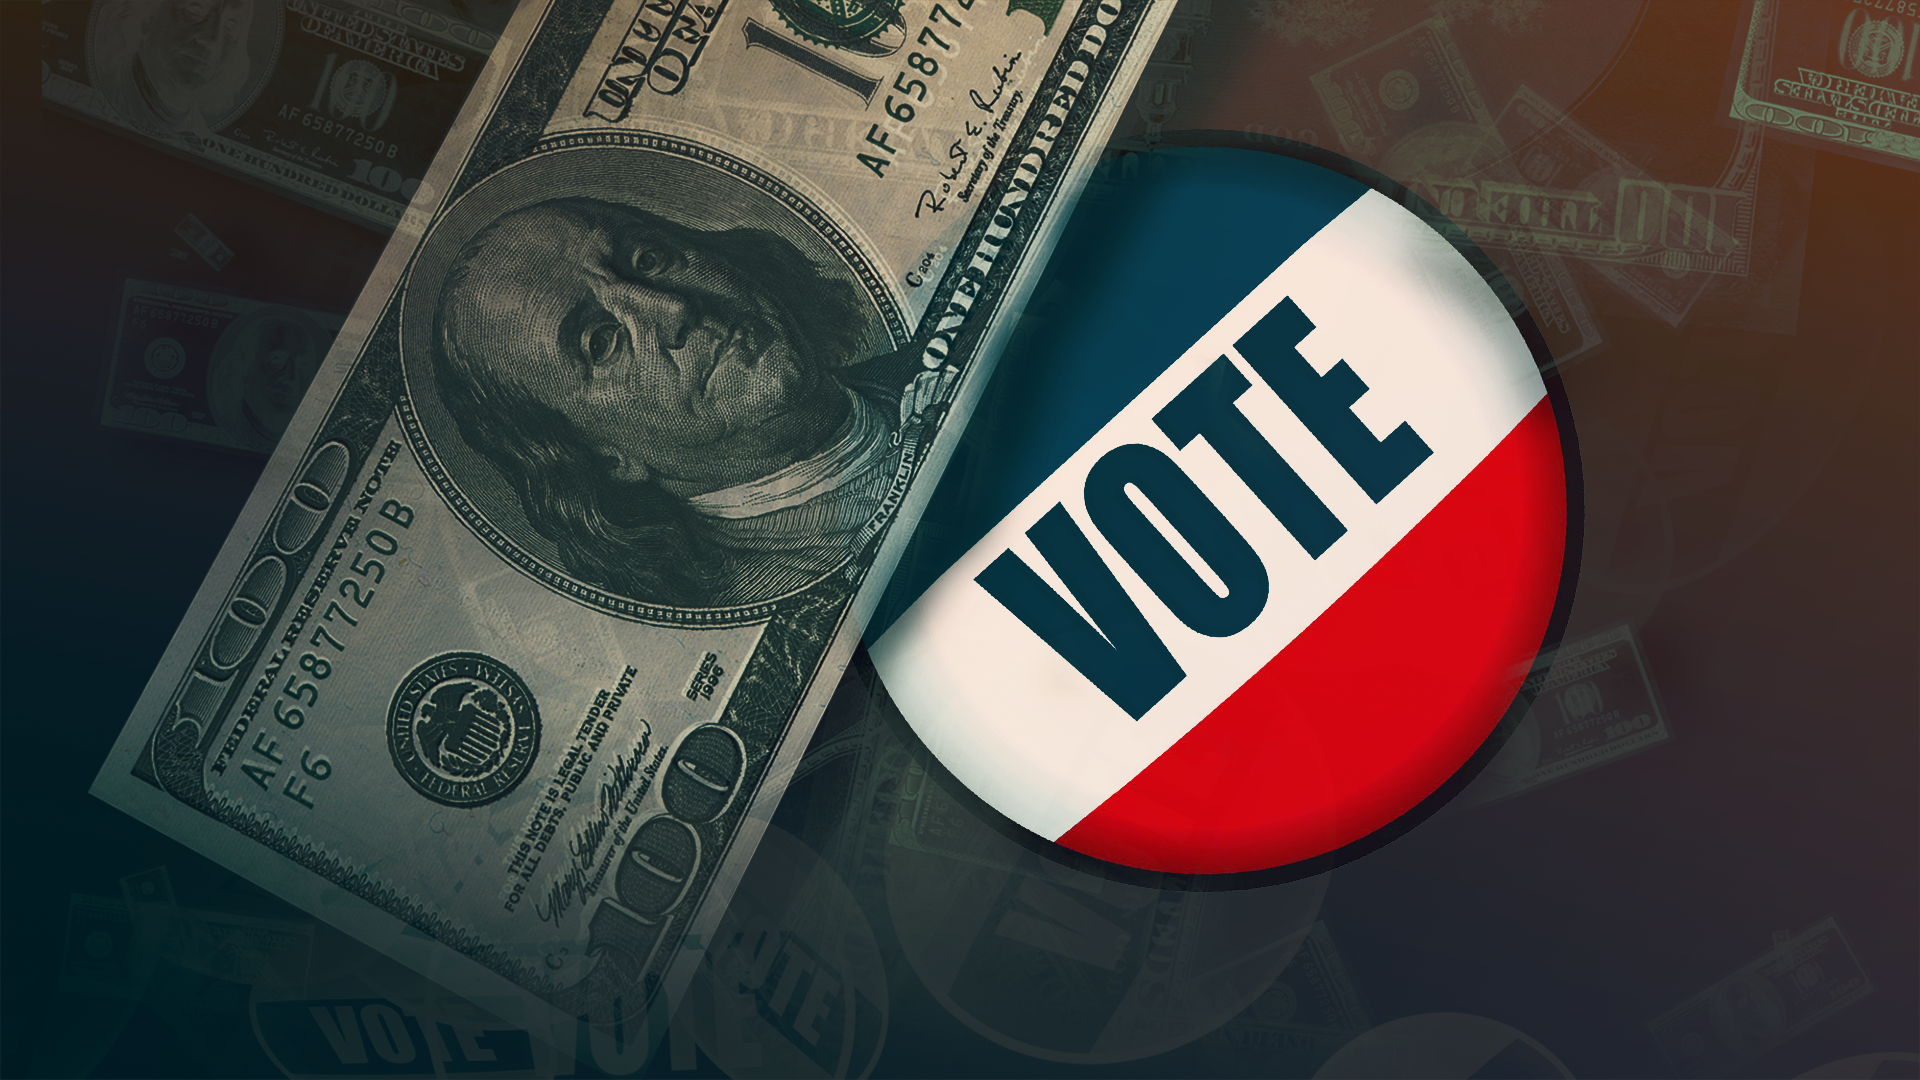 Political Science Research Paper OUTLINE Help on Campaign Contributions?